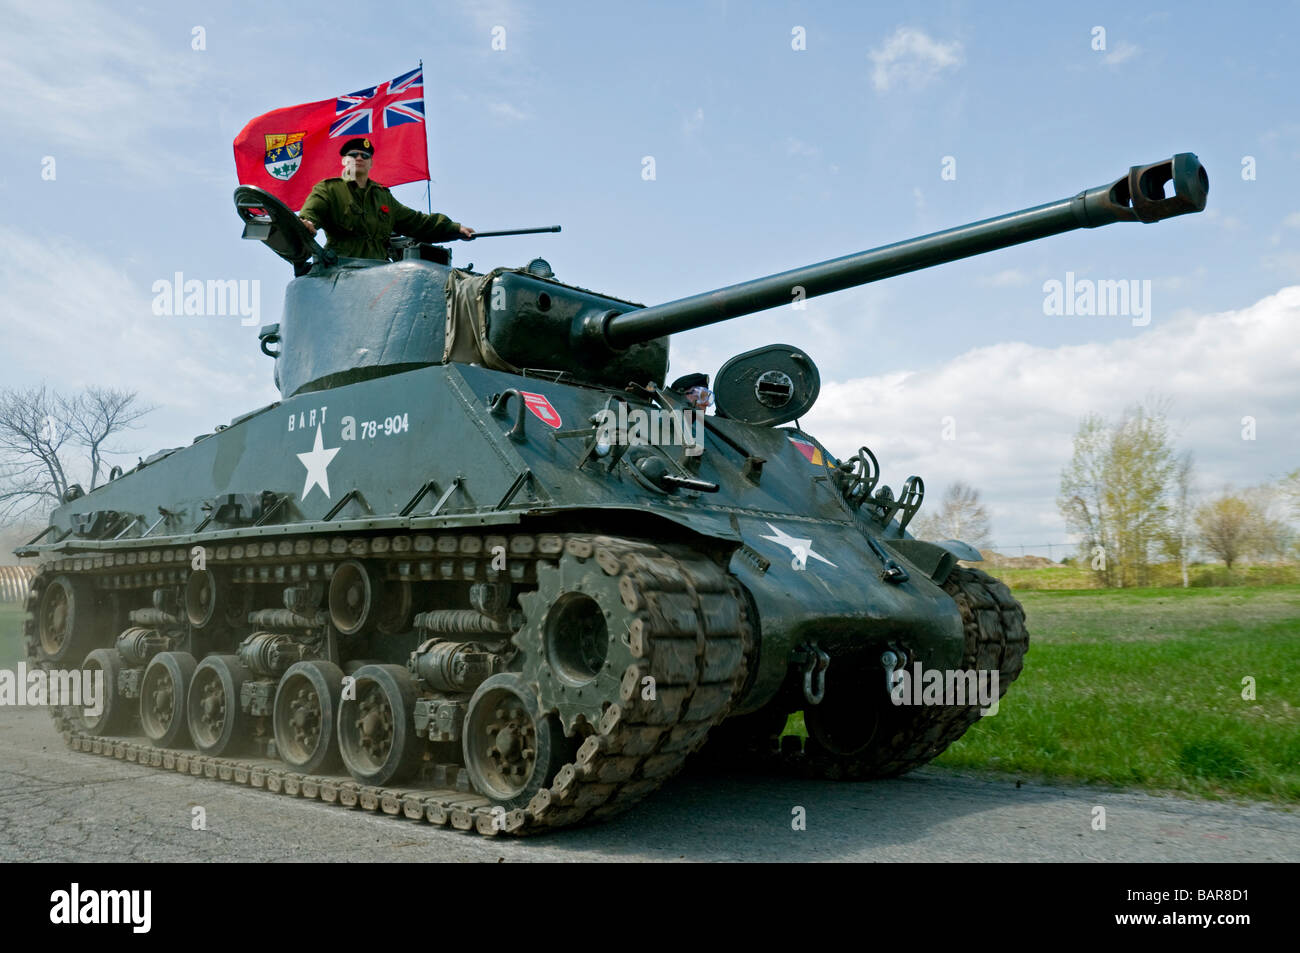 A fully restored IV Sherman tank flying the World War Two Canadian flag. - Stock Image